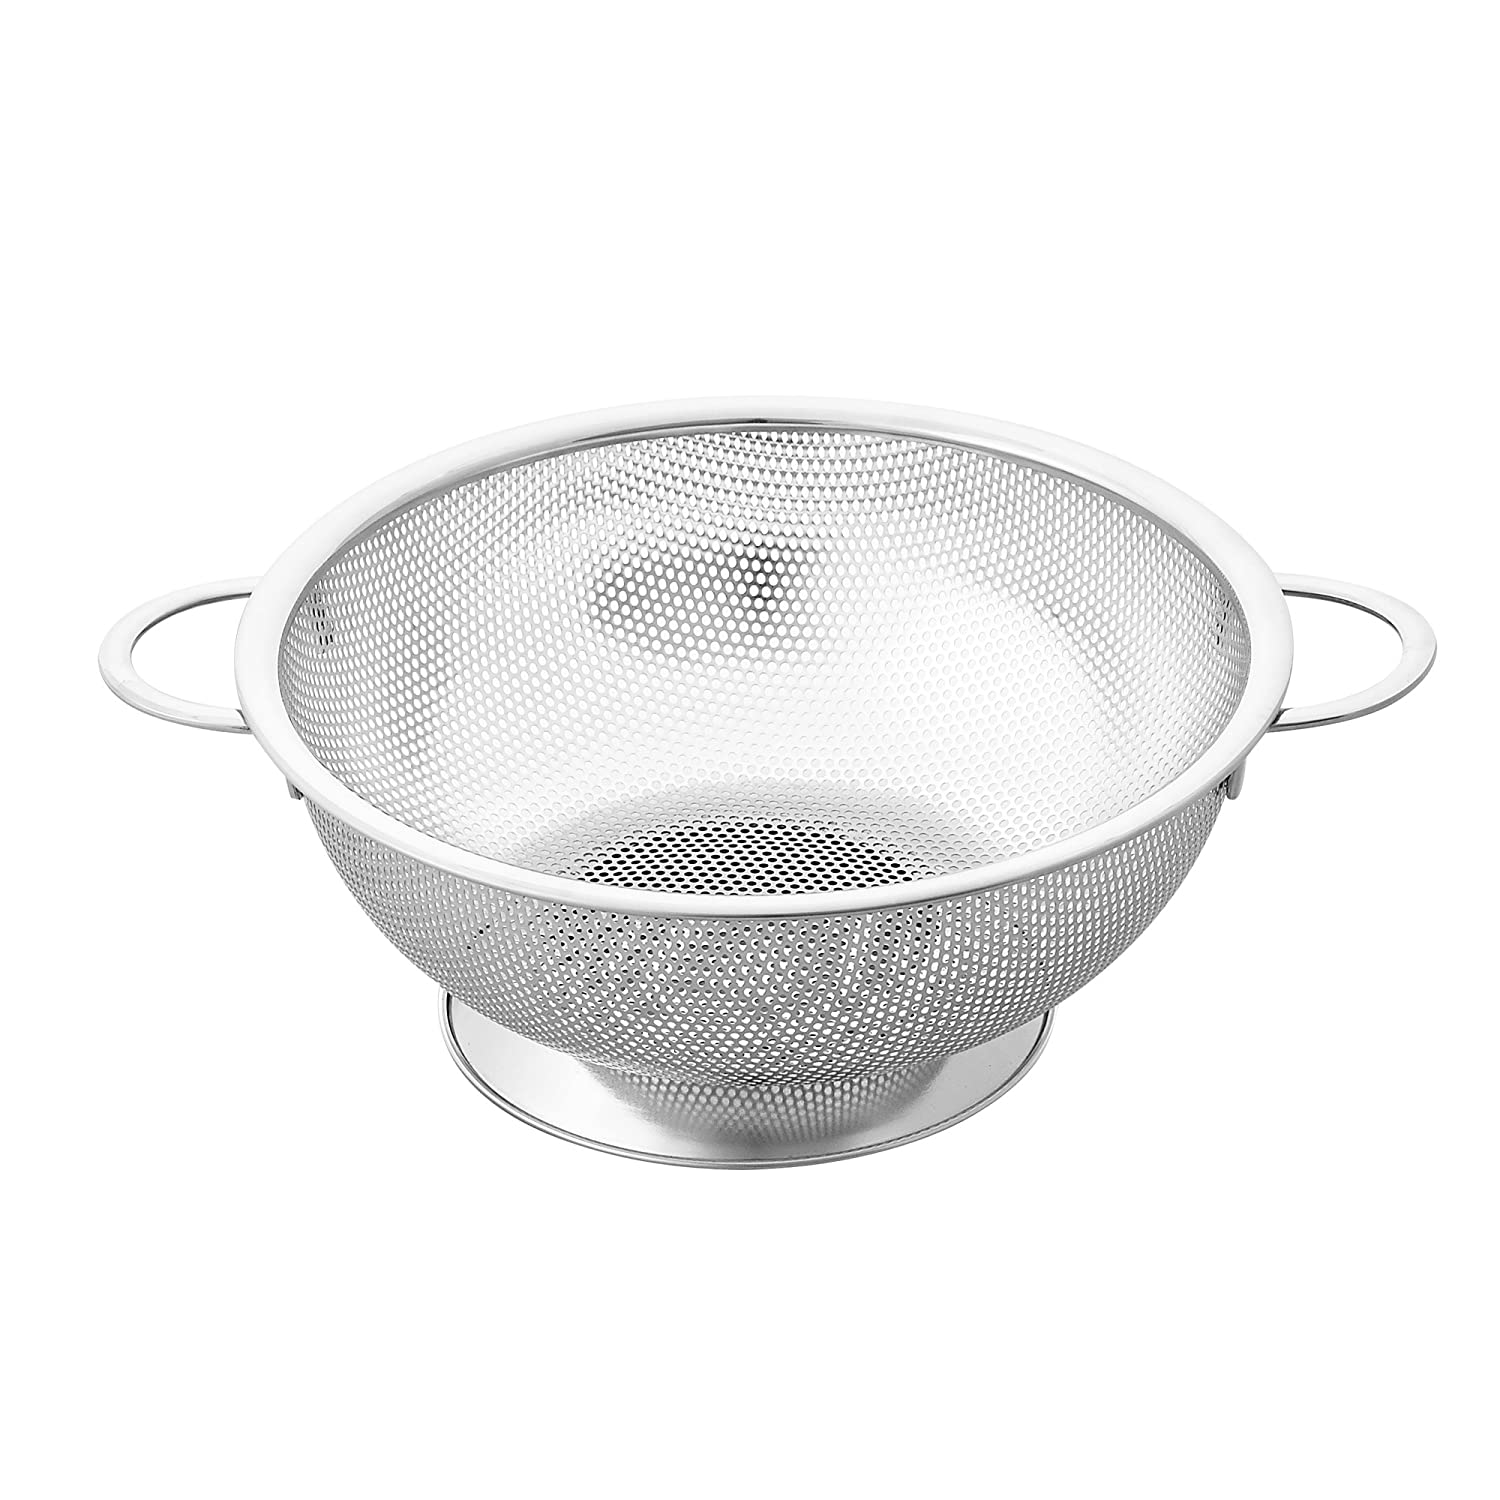 Cook N Home Micro Perforated Colander with Handle and Solid Base, 3-Quarts, Stainless Steel 02437